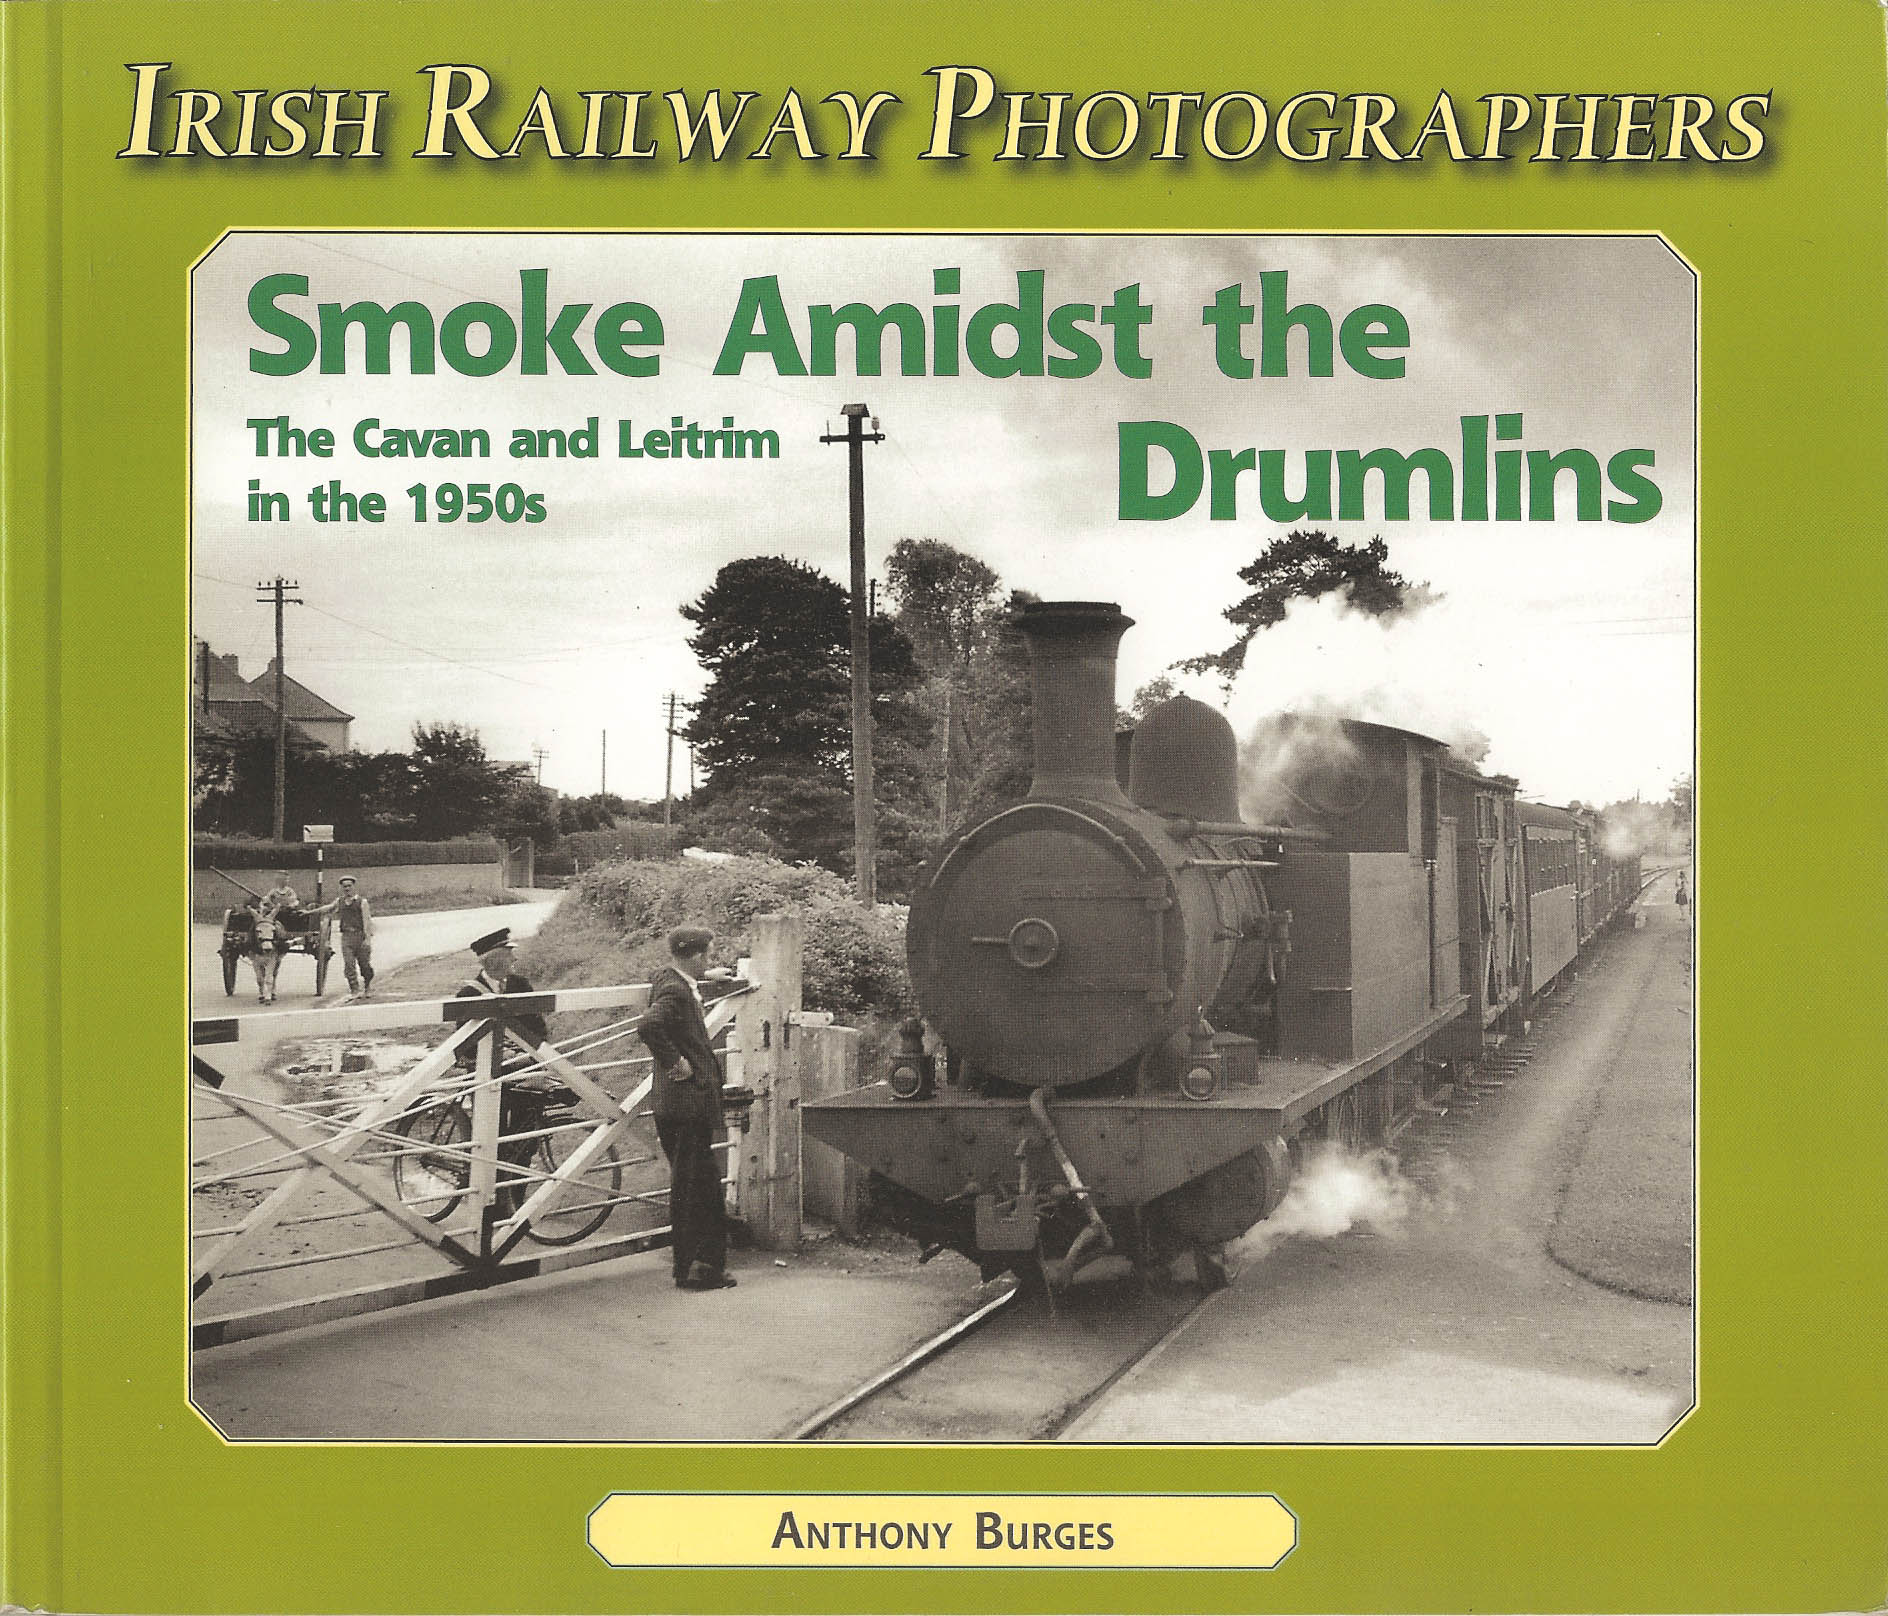 Irish Railway Photographers Smoke Amidst the Drumlins